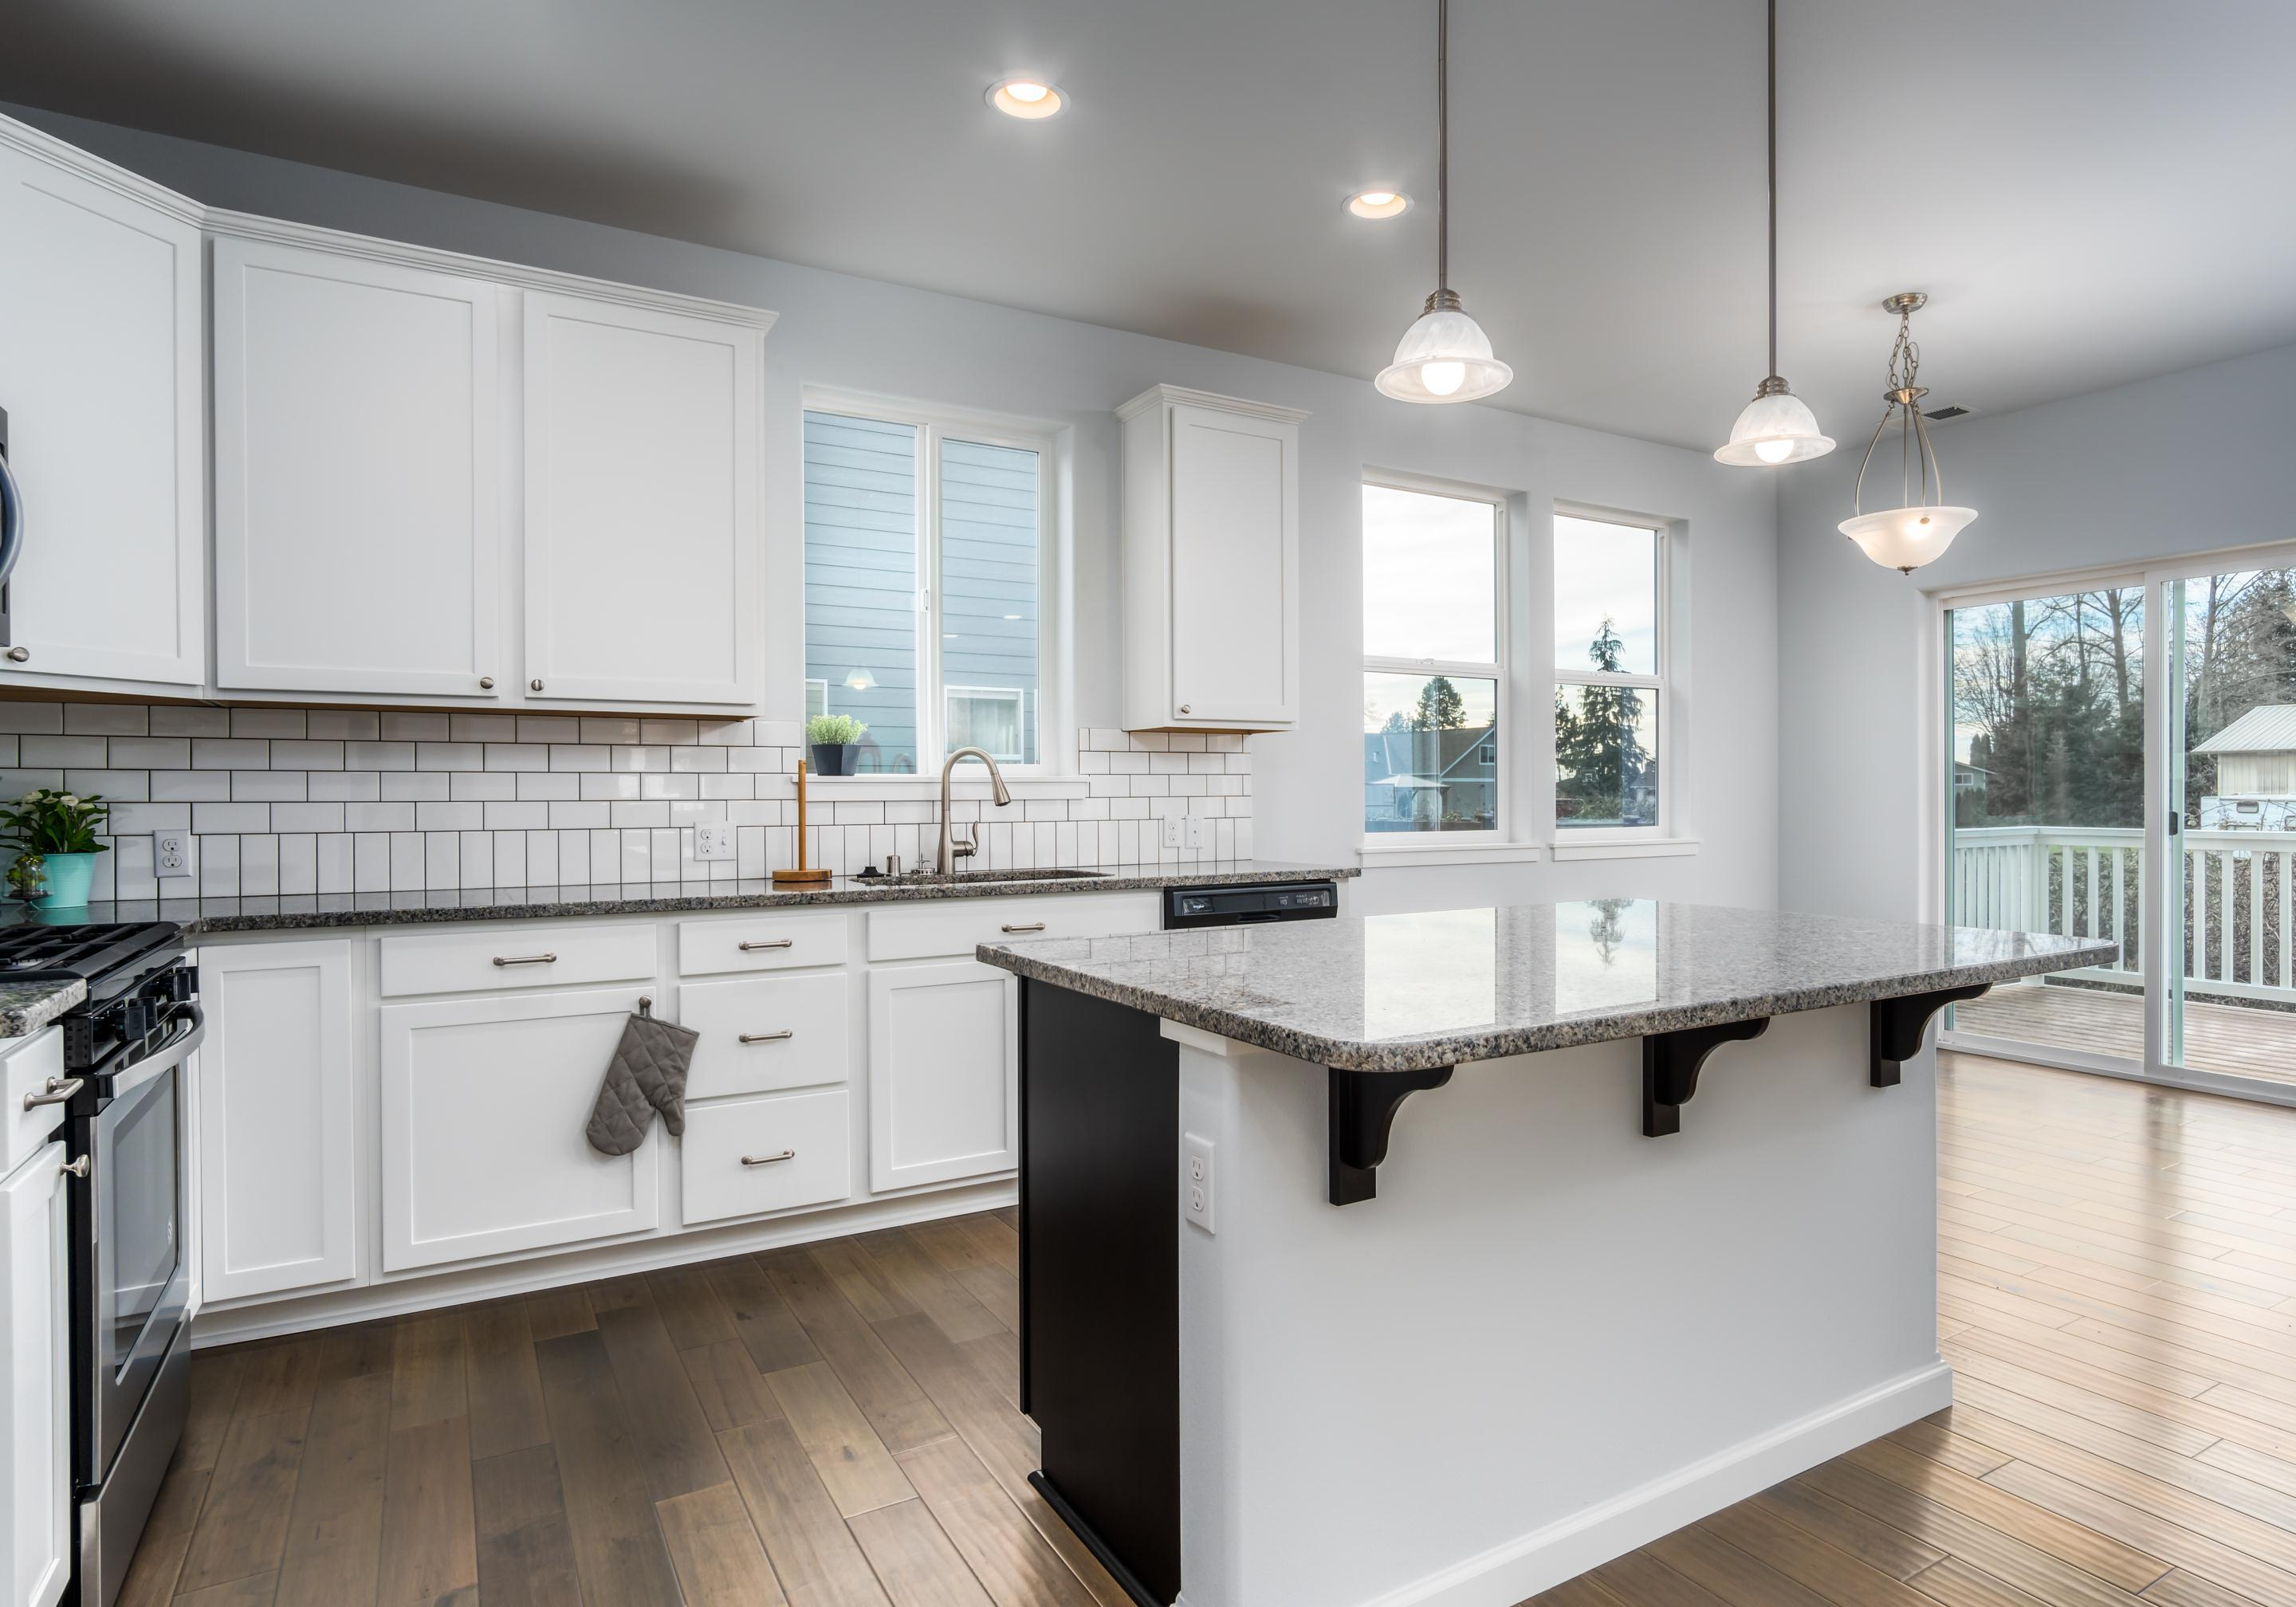 Kitchen featured in the CC Padilla By Landed Gentry Homes in Bellingham, WA